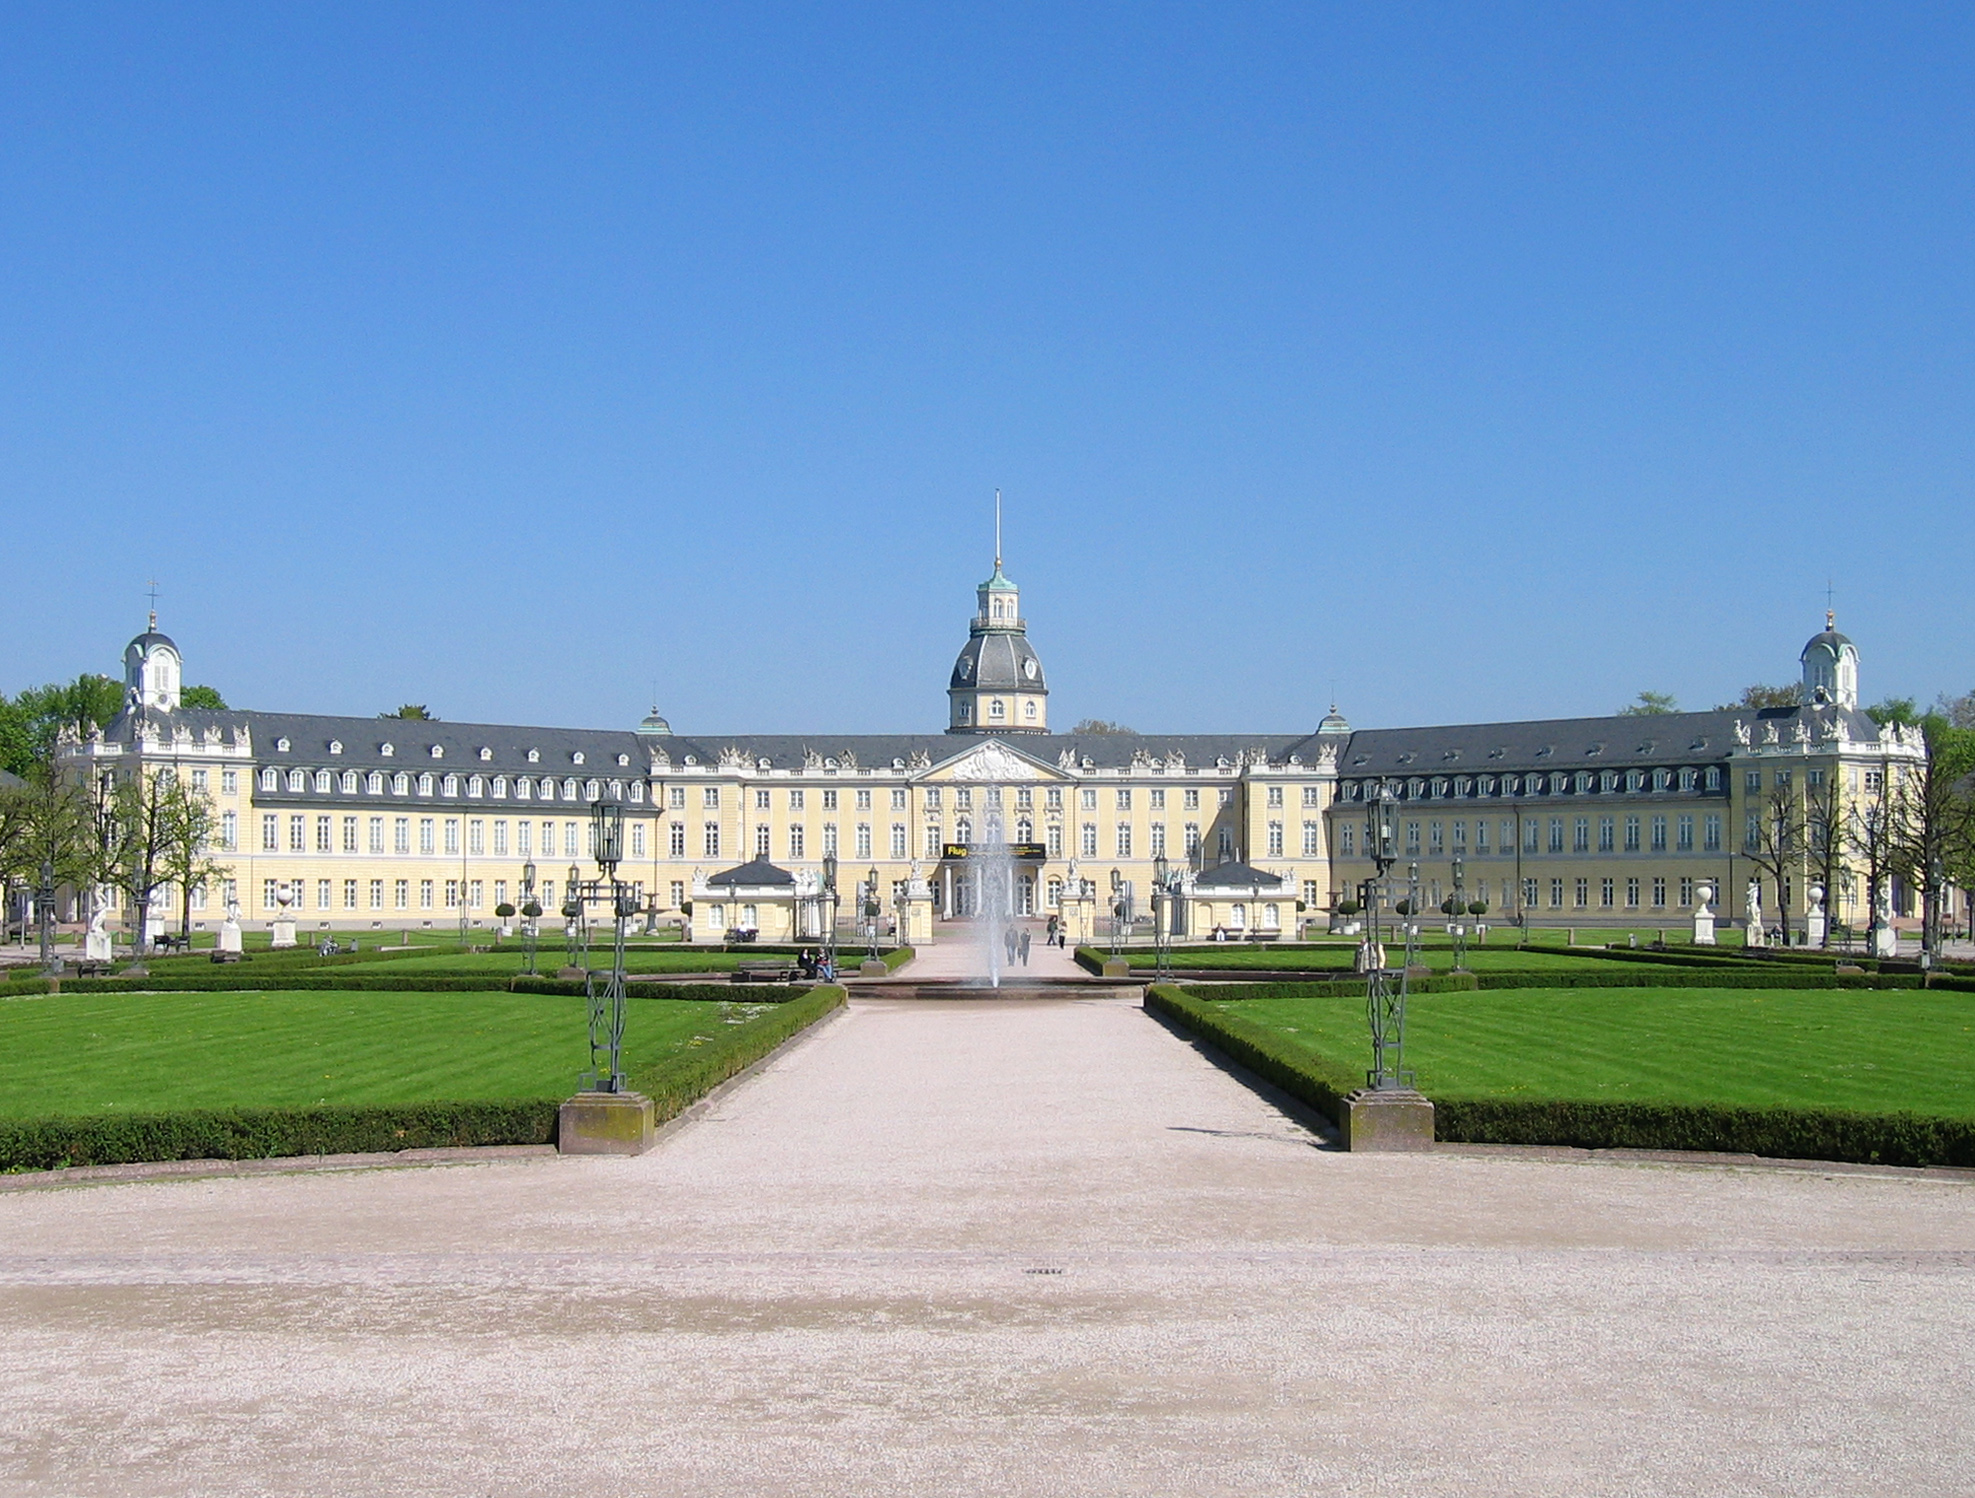 http://dic.academic.ru/pictures/wiki/files/75/Karlsruhe-Schloss-meph666-2005-Apr-22.jpg